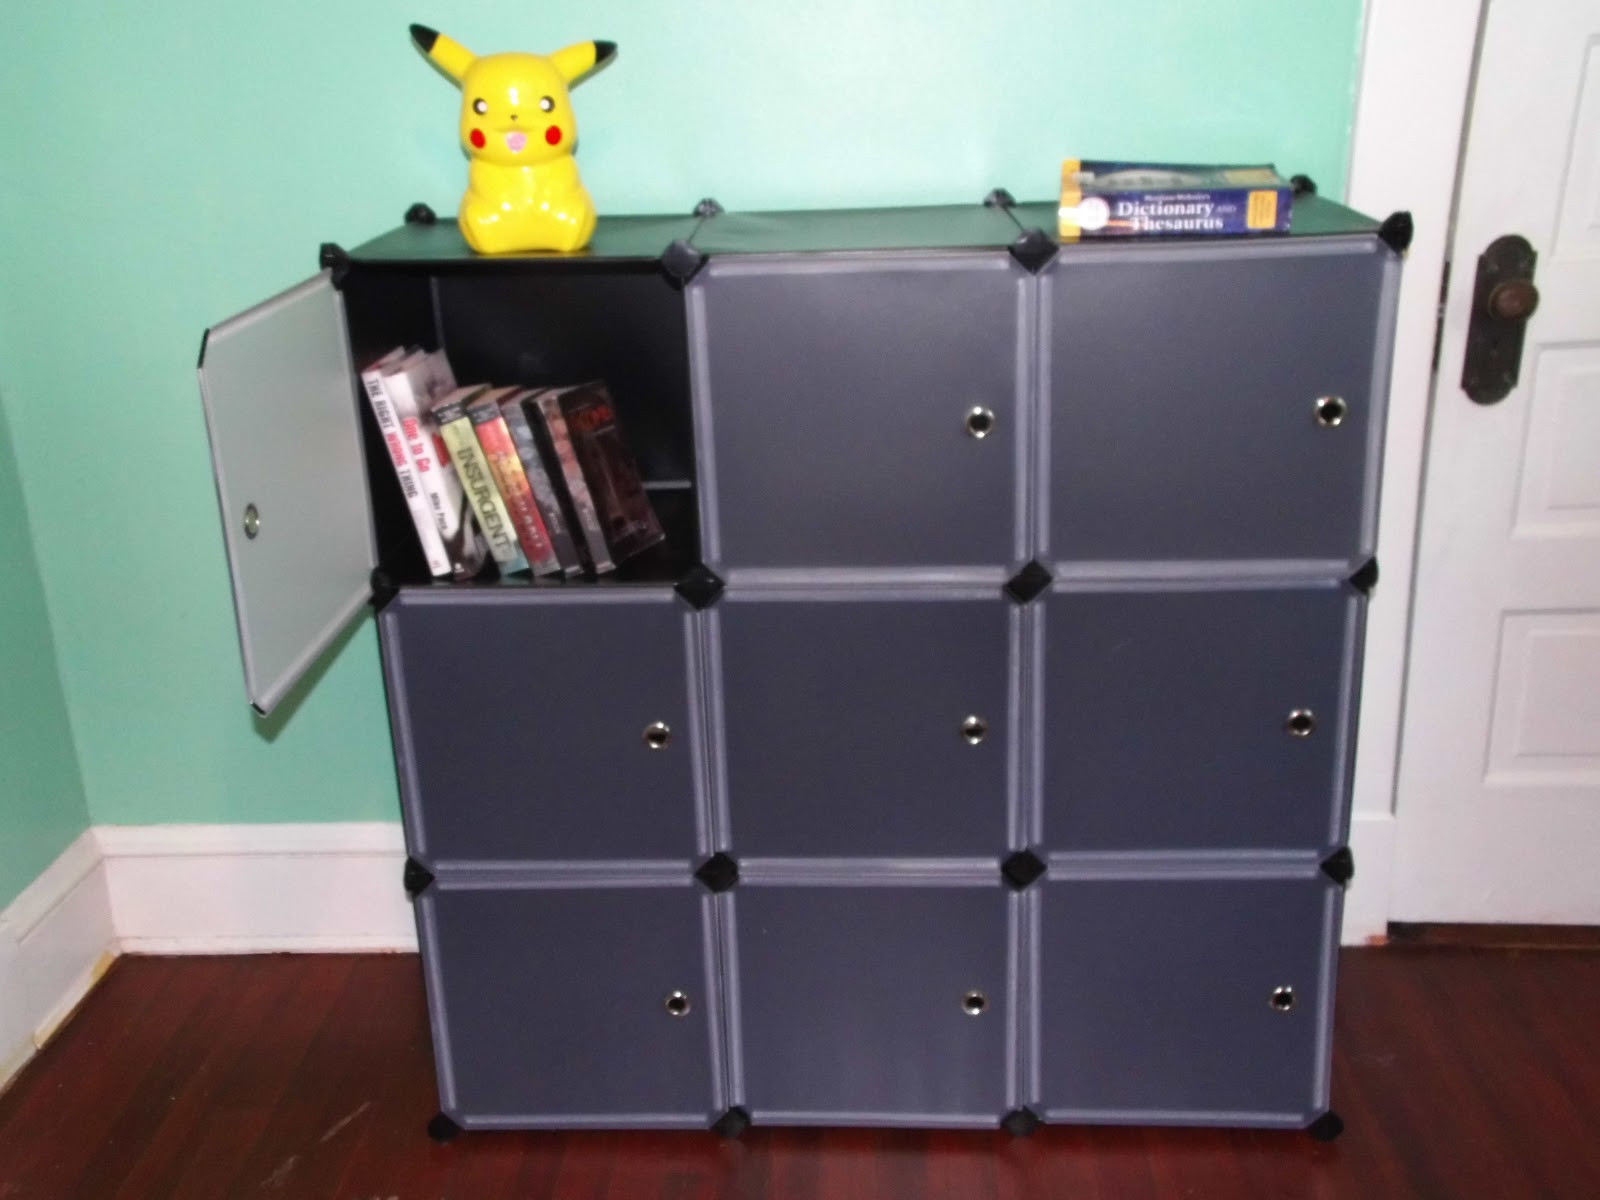 Best ideas about DIY Cube Organizer . Save or Pin With Open Eyes To See Songmics 3 Tier DIY Storage Cube Now.